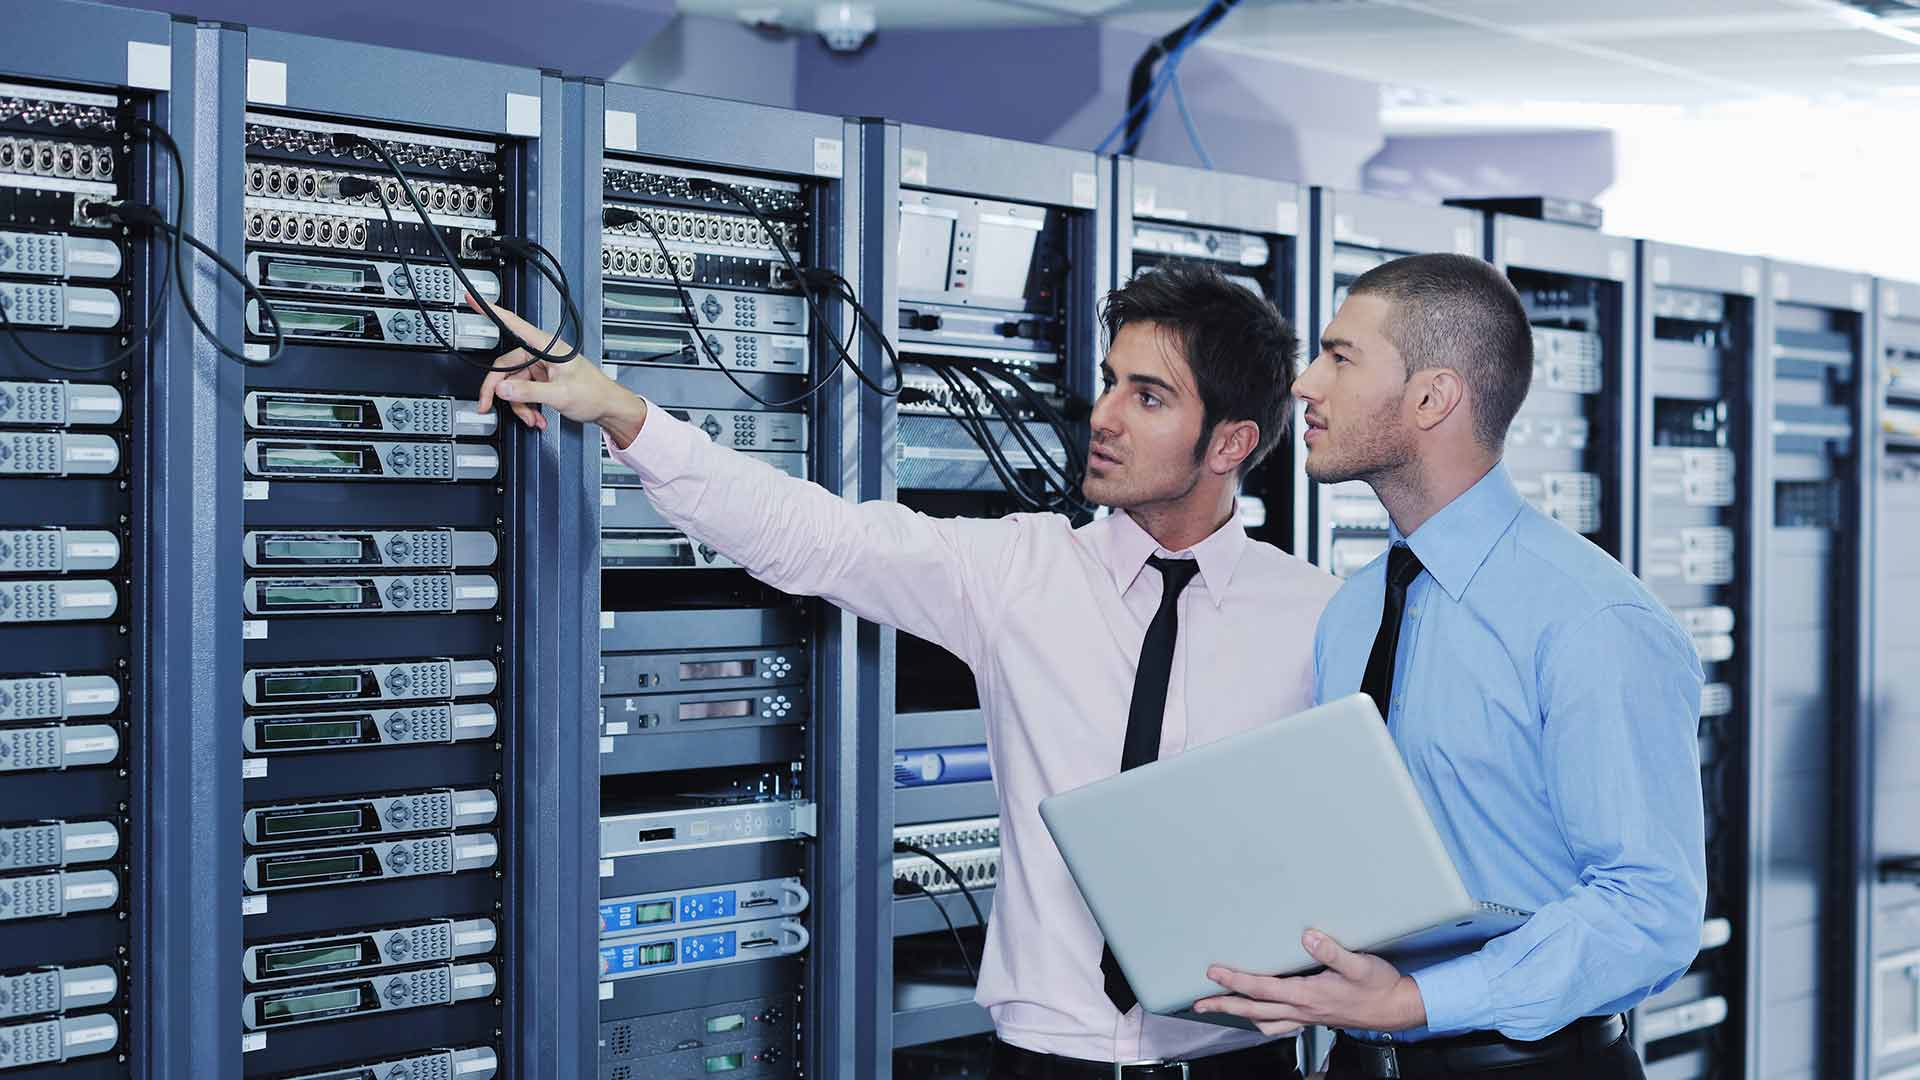 bachelor of computer and networking engineering technology